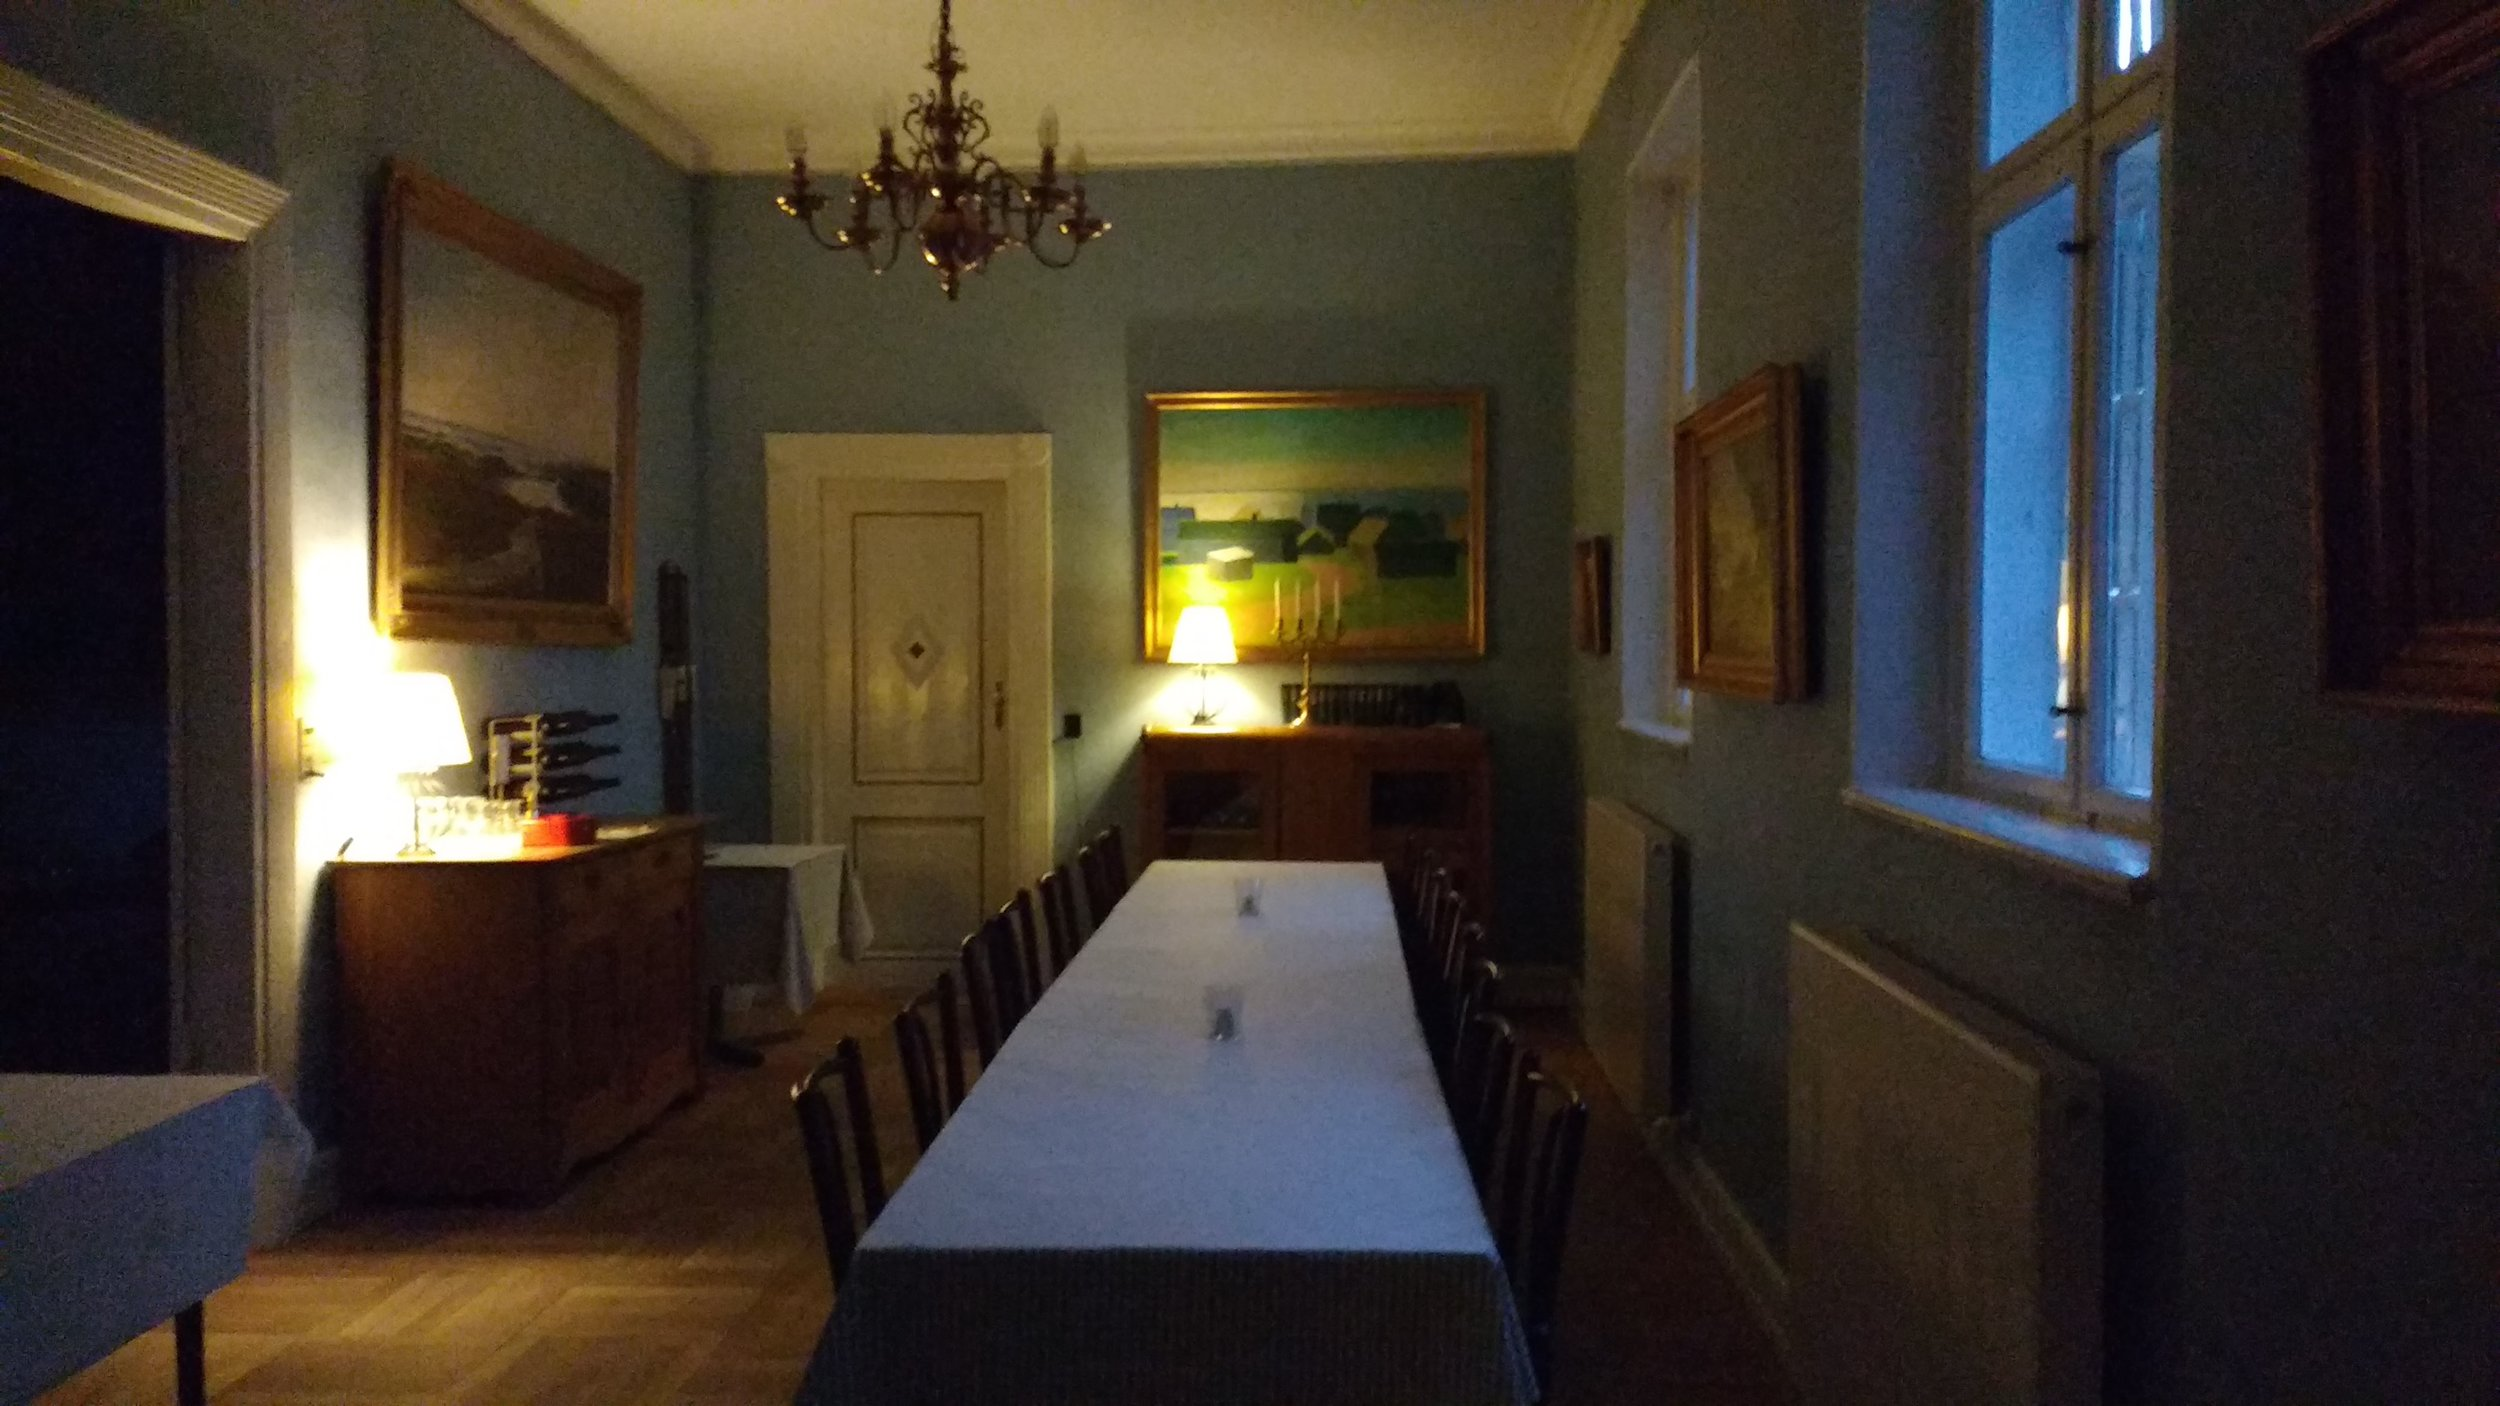 Staying two weeks at  Hald Hovedgaard  writer's retreat in the middle of Jutland early August.